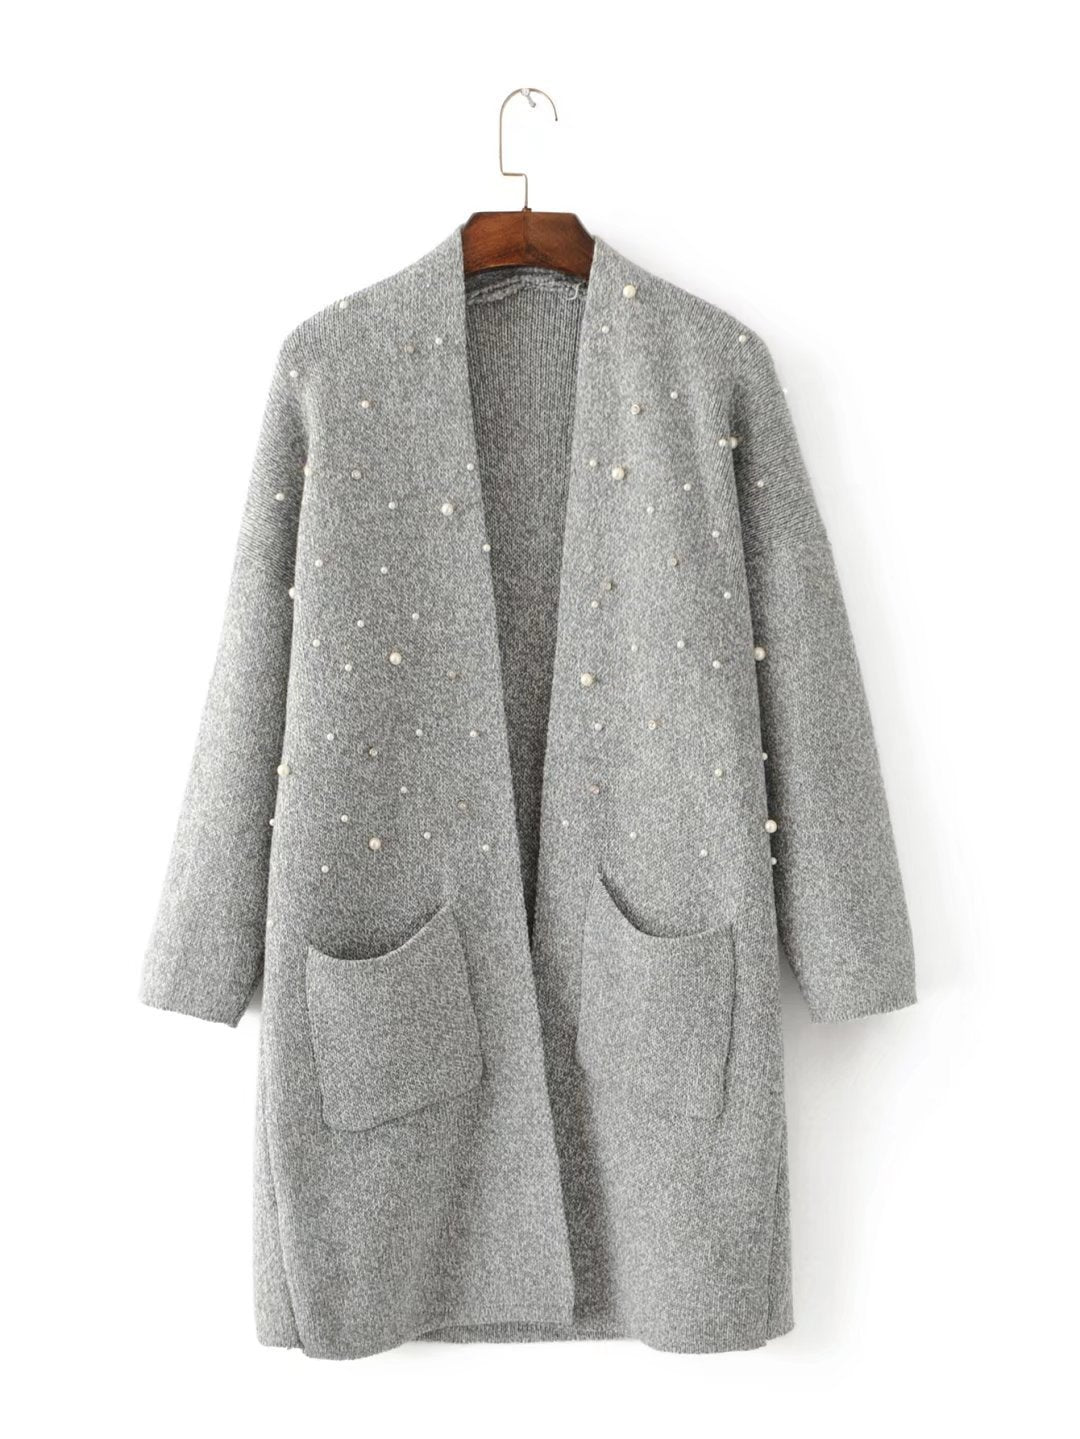 Pearl Decorated Long Cardigan Sweater-SWEATERS + CARDIGANS-SheSimplyShops